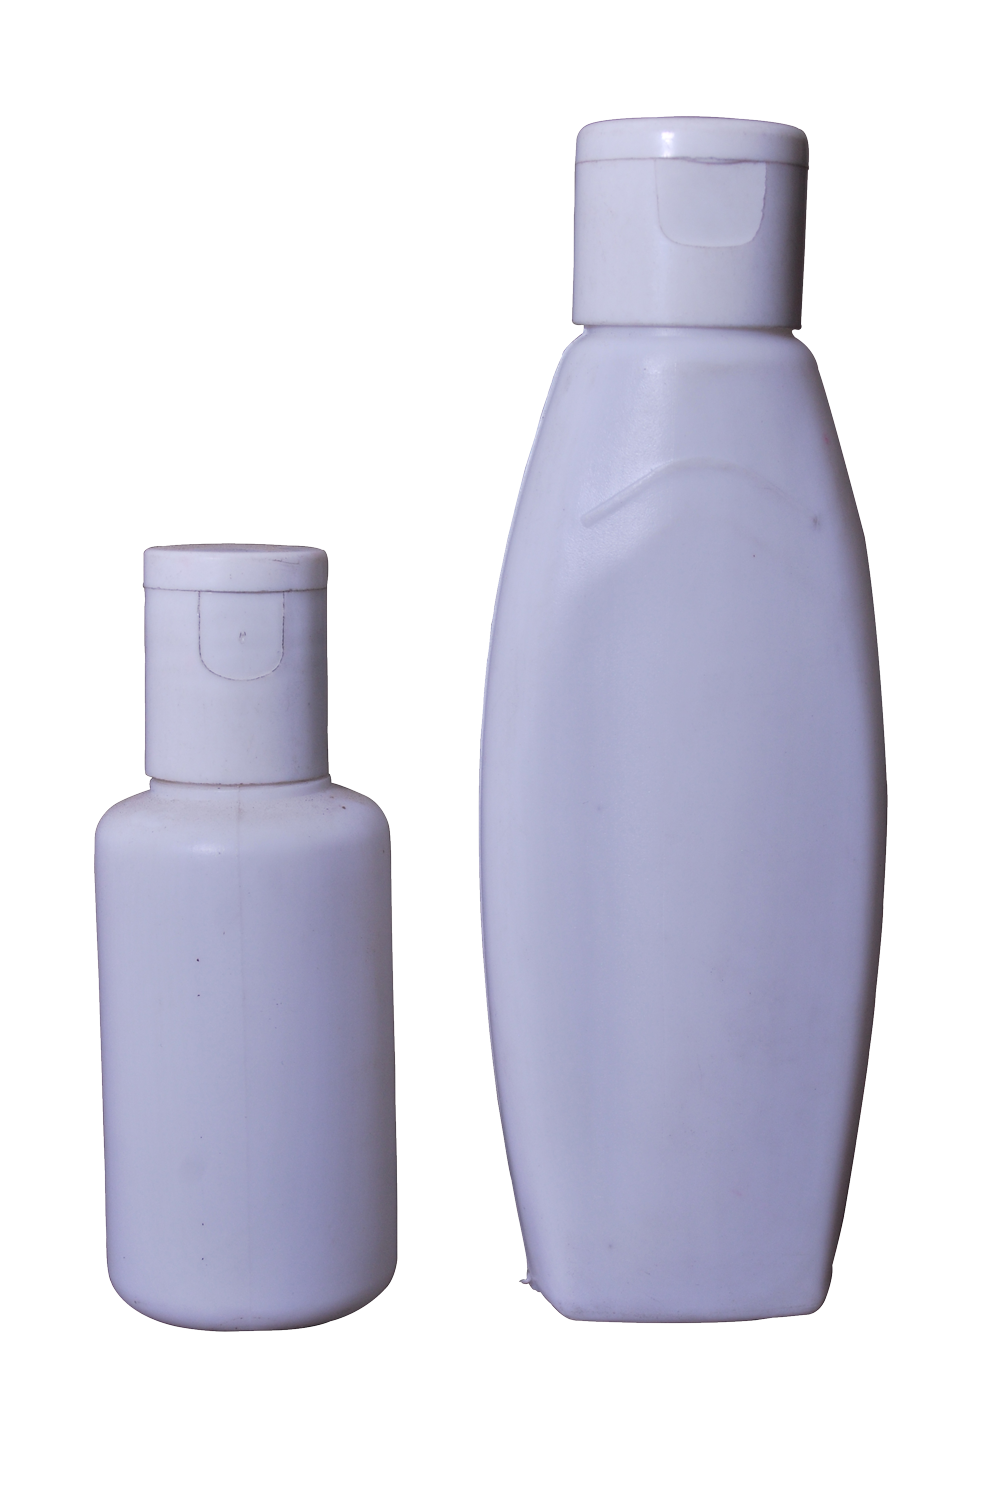 Shampoo bottle png. Parth polymers